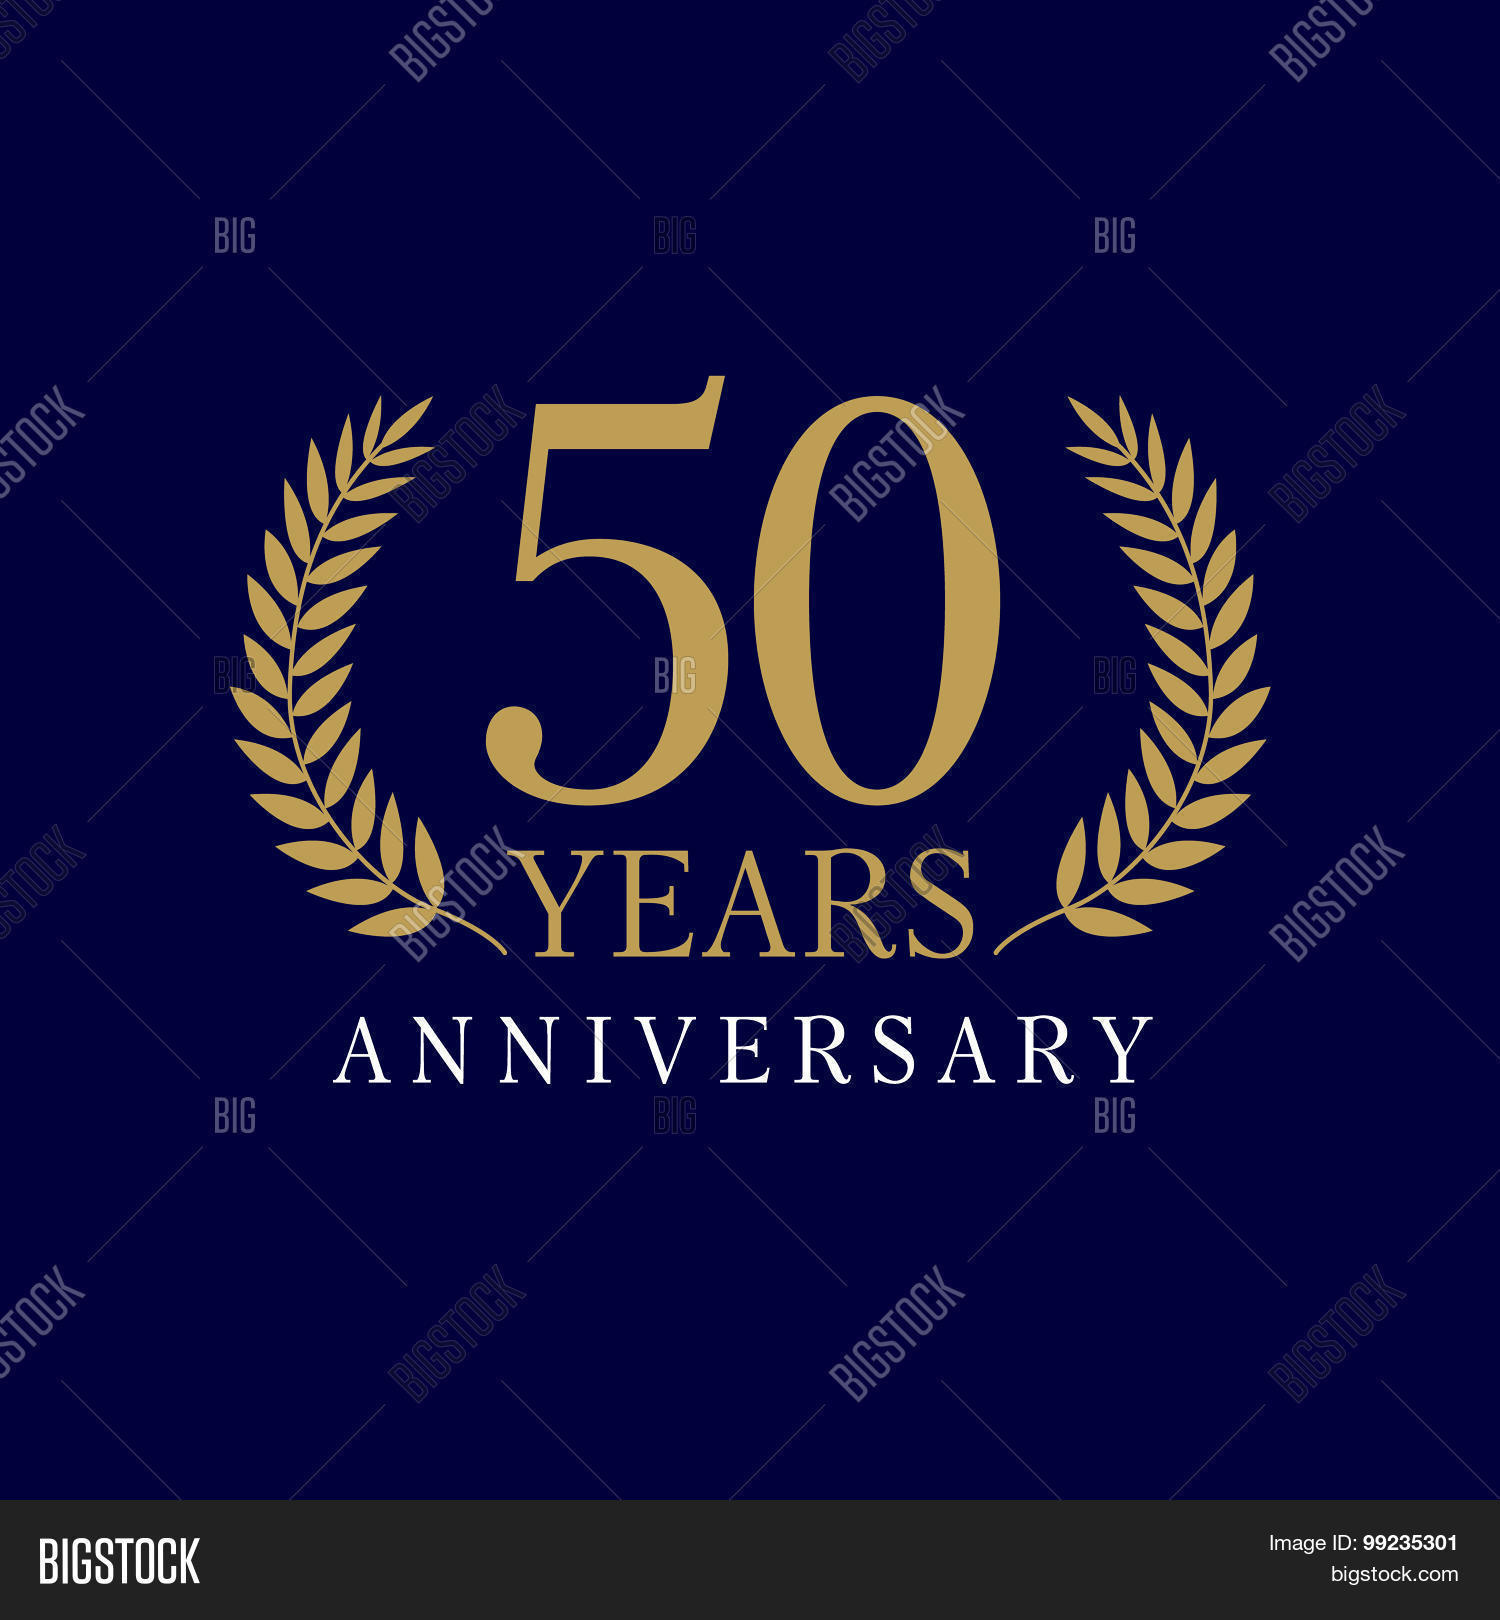 50 Years Old Vector Photo Free Trial Bigstock